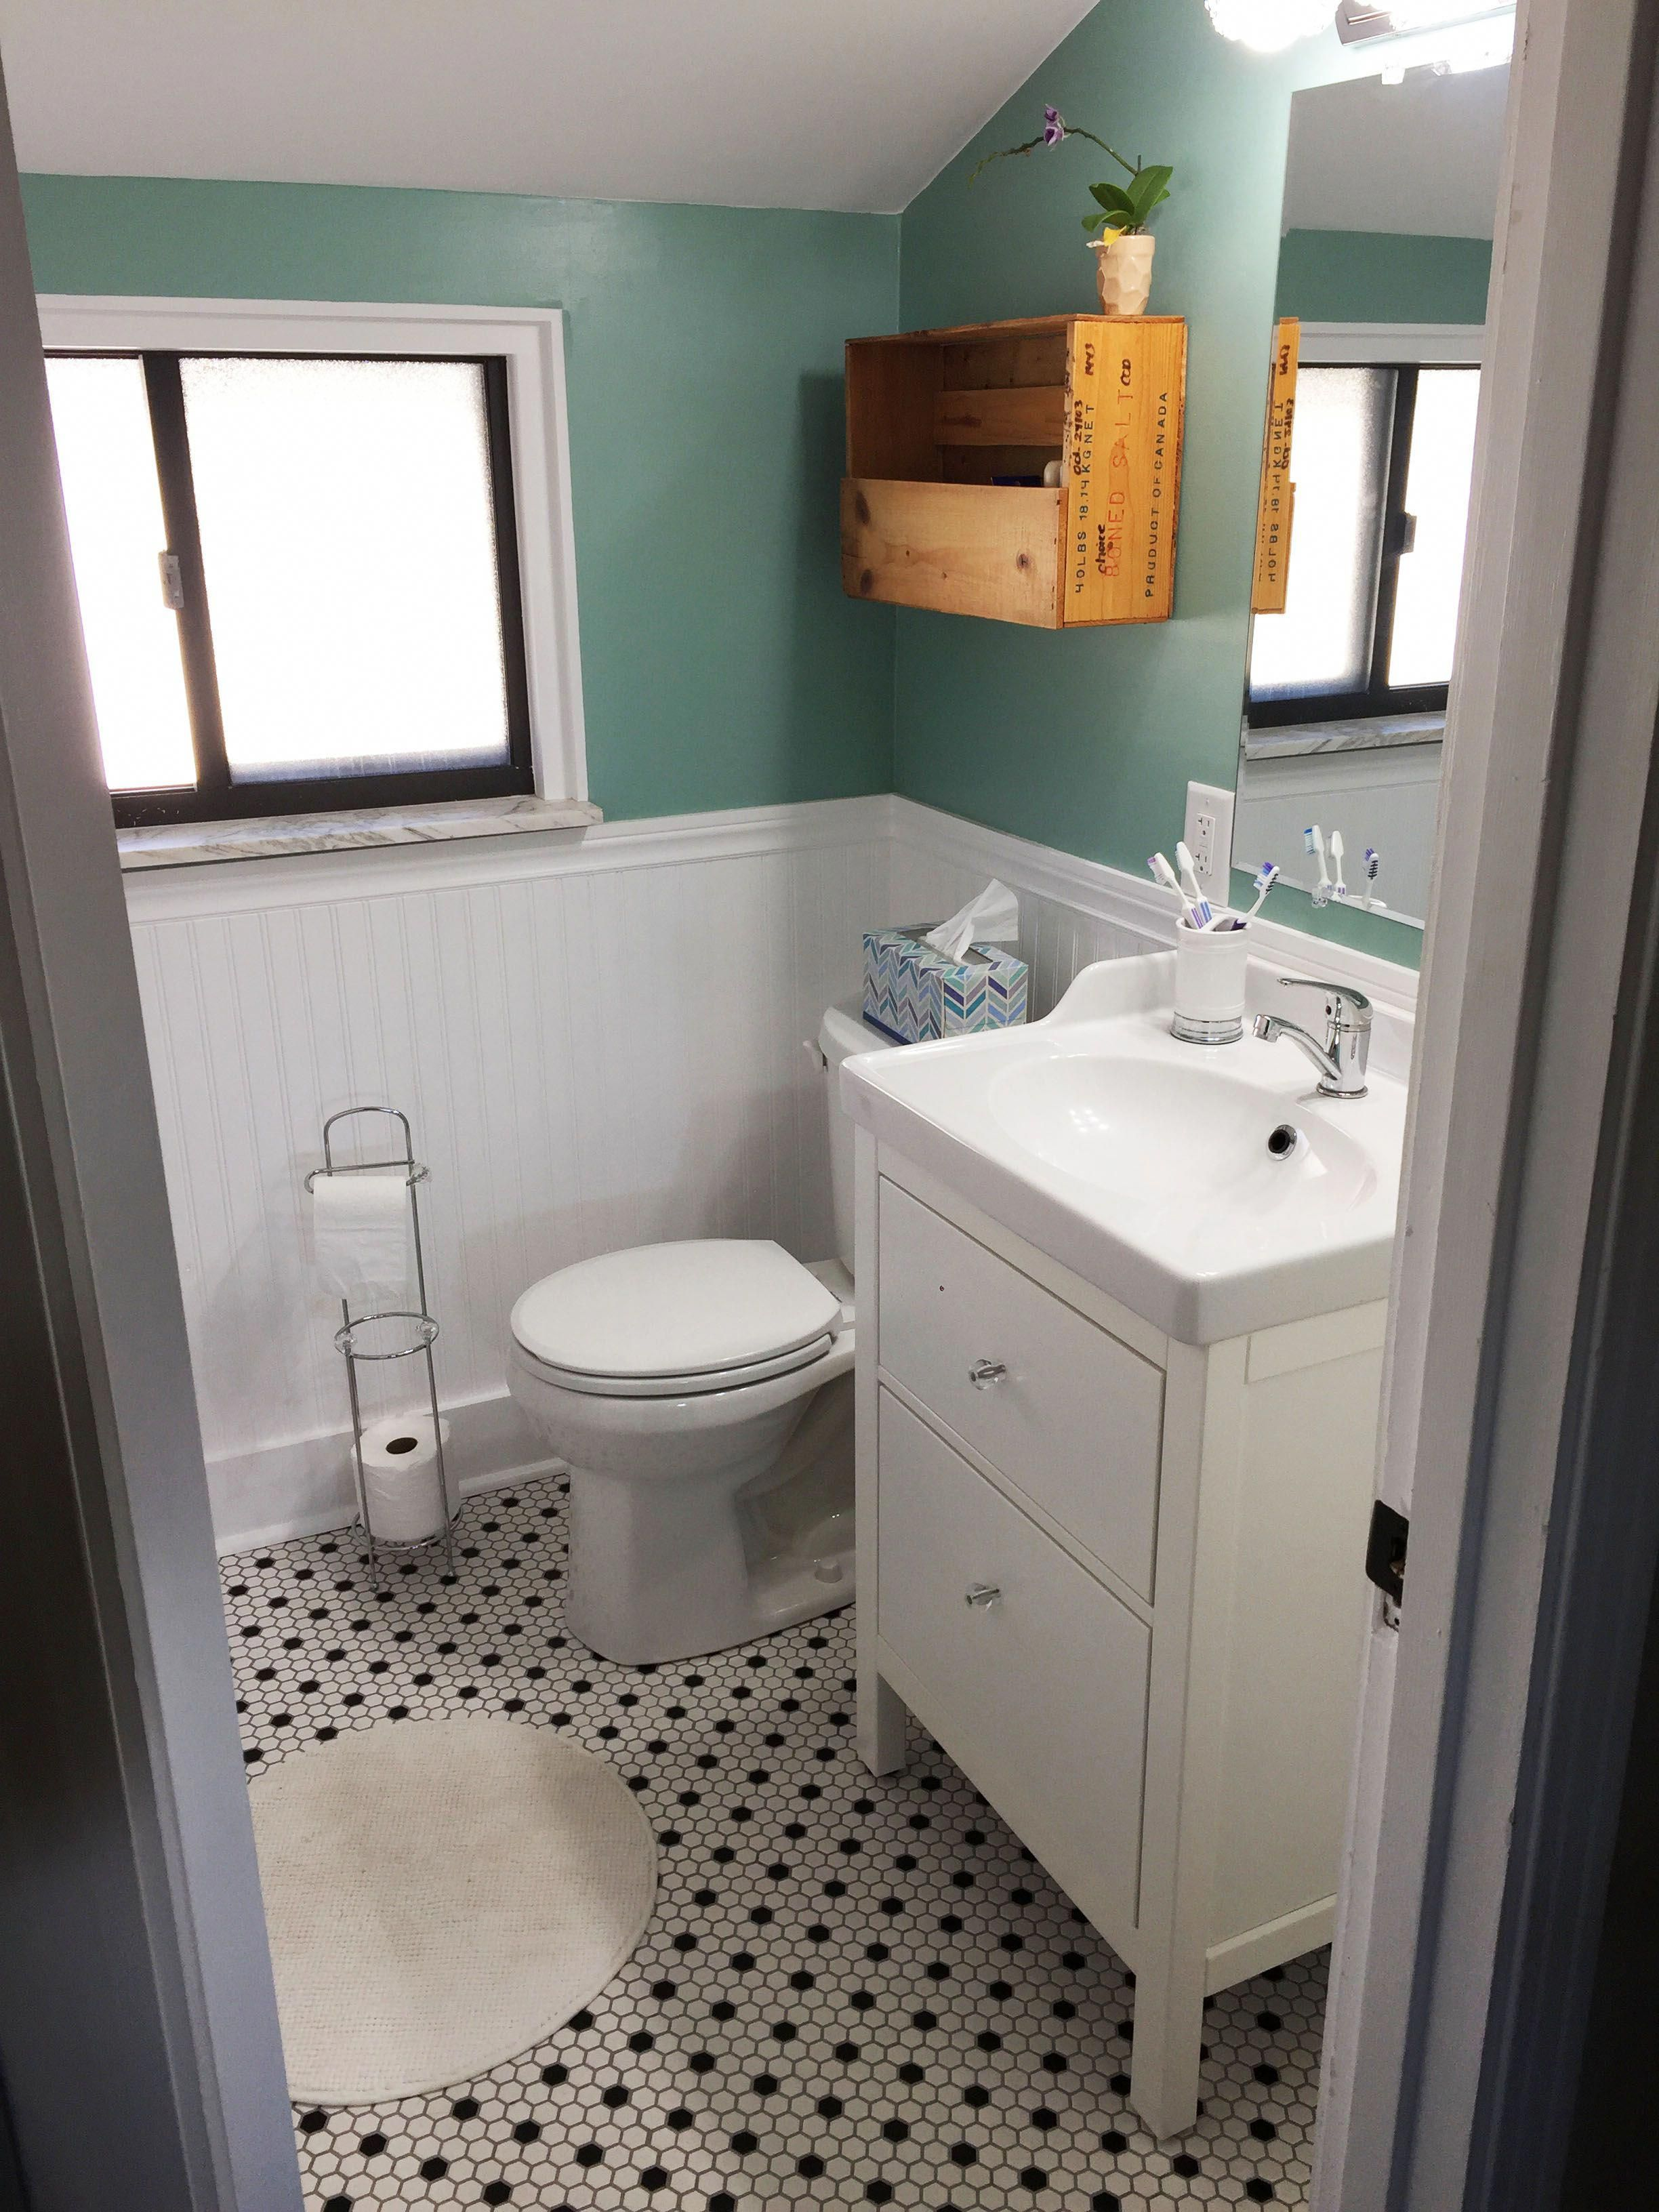 How Much Does It Cost To Remodel A Bathroom Yourself